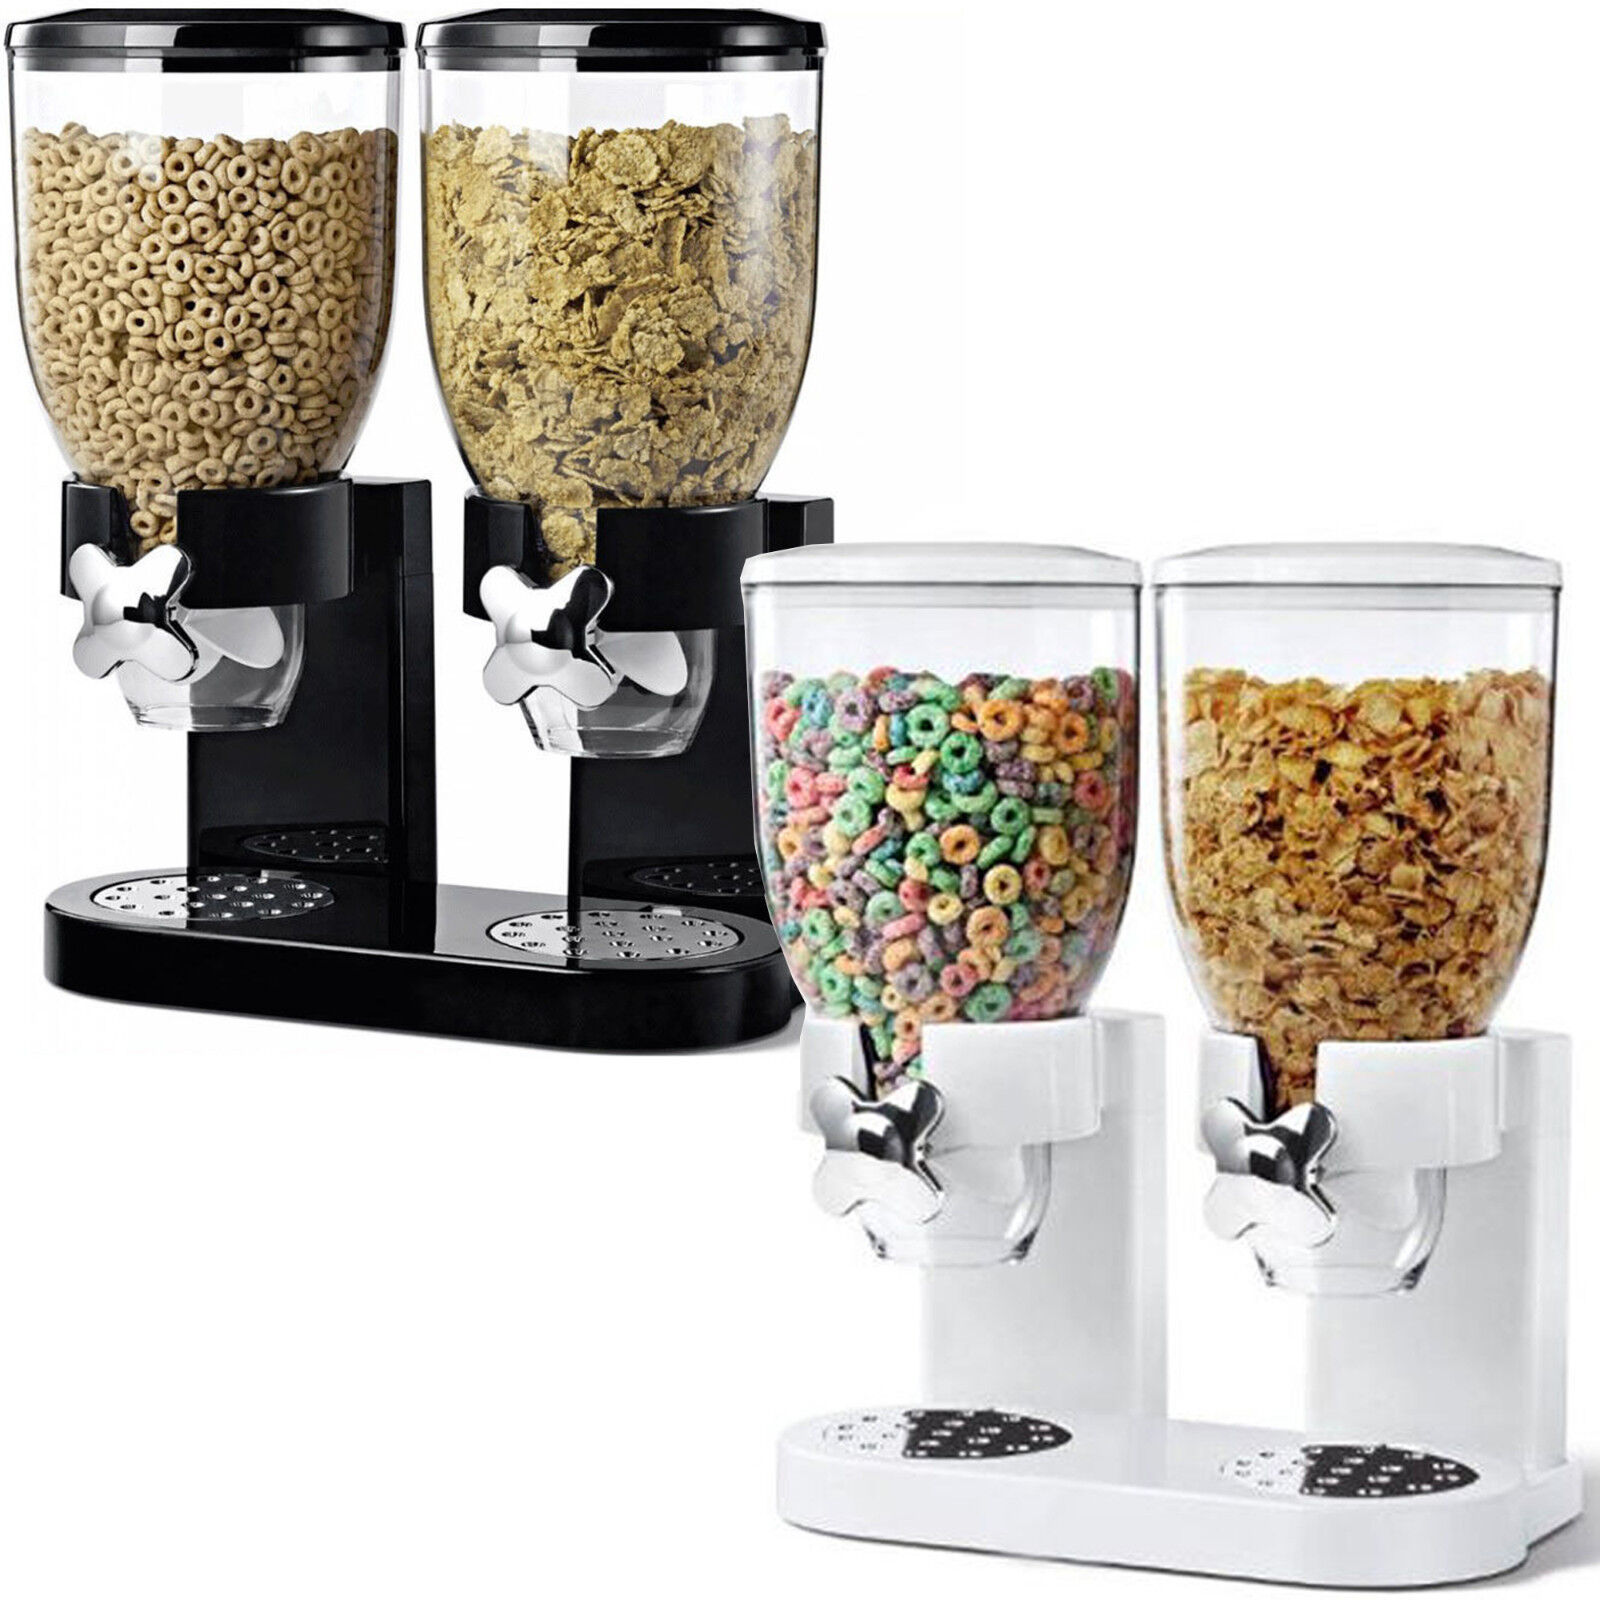 DOUBLE CEREAL DISPENSER DRY FOOD STORAGE CONTAINER DISPENSER